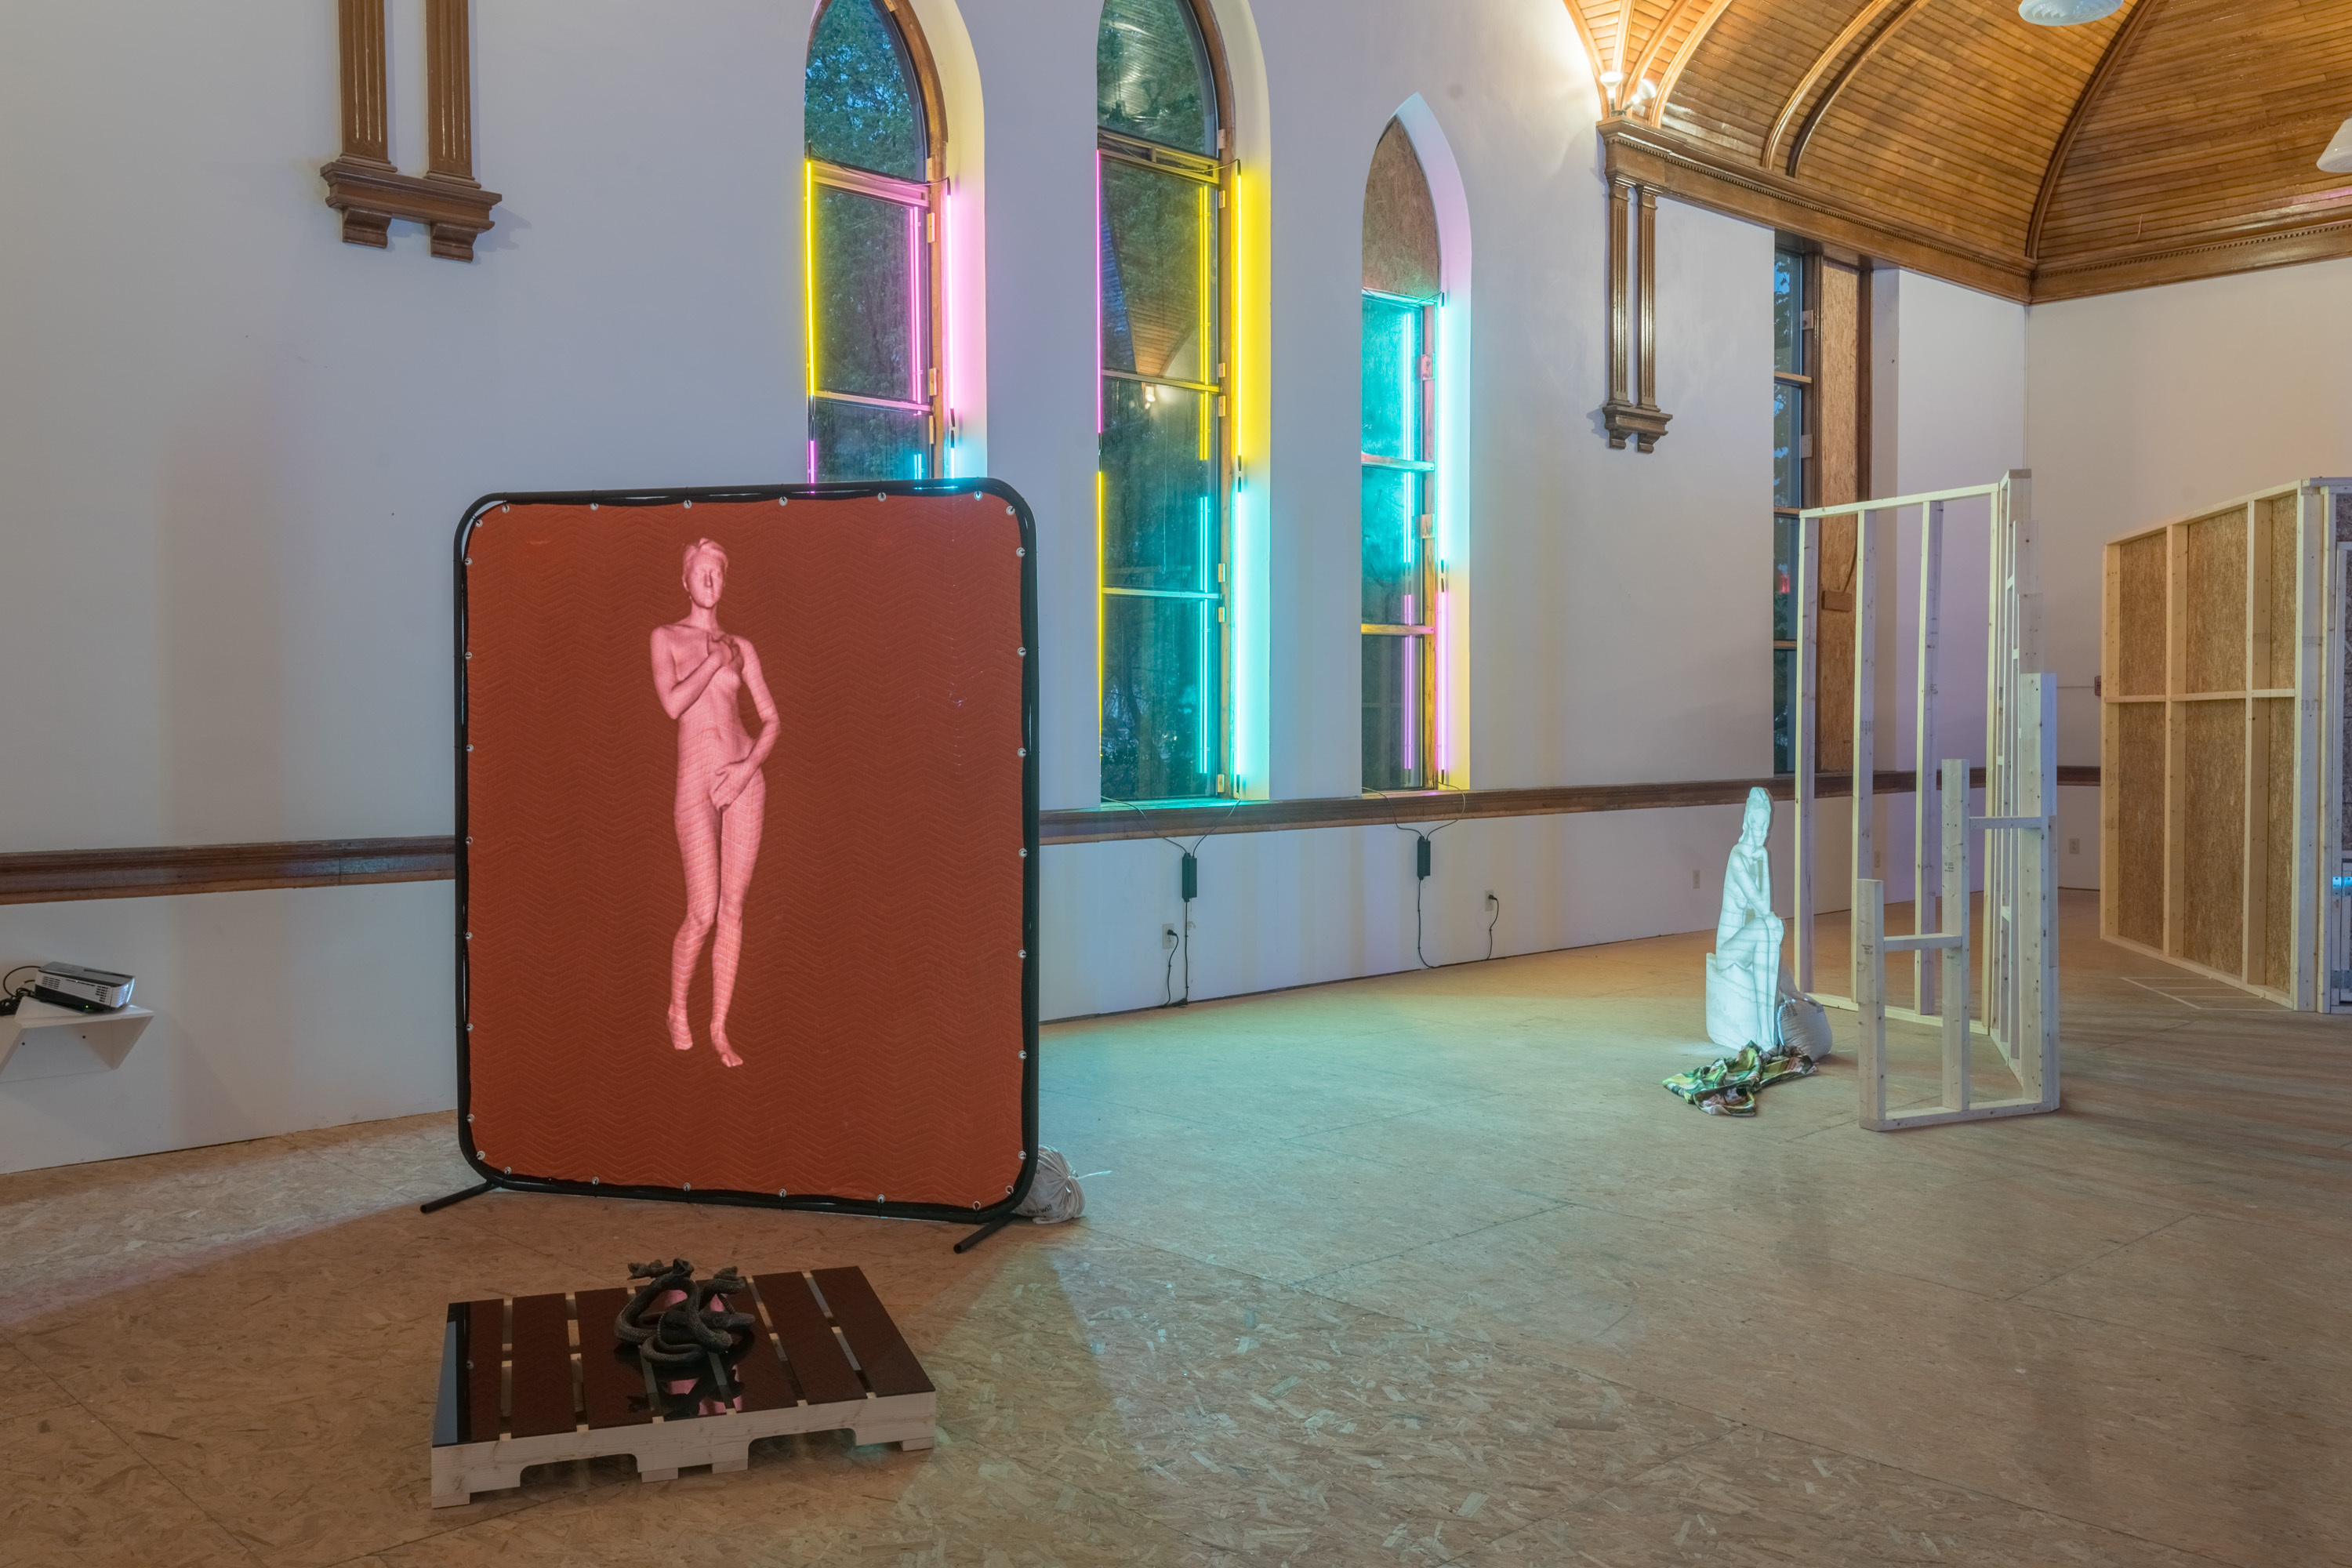 Sydni Gause, Subverting The Gaze, Installation, 3-d Body Scan, Glass, Wood, Light Media, Neon, Bronze, Moving Blanket, Silk, 2017